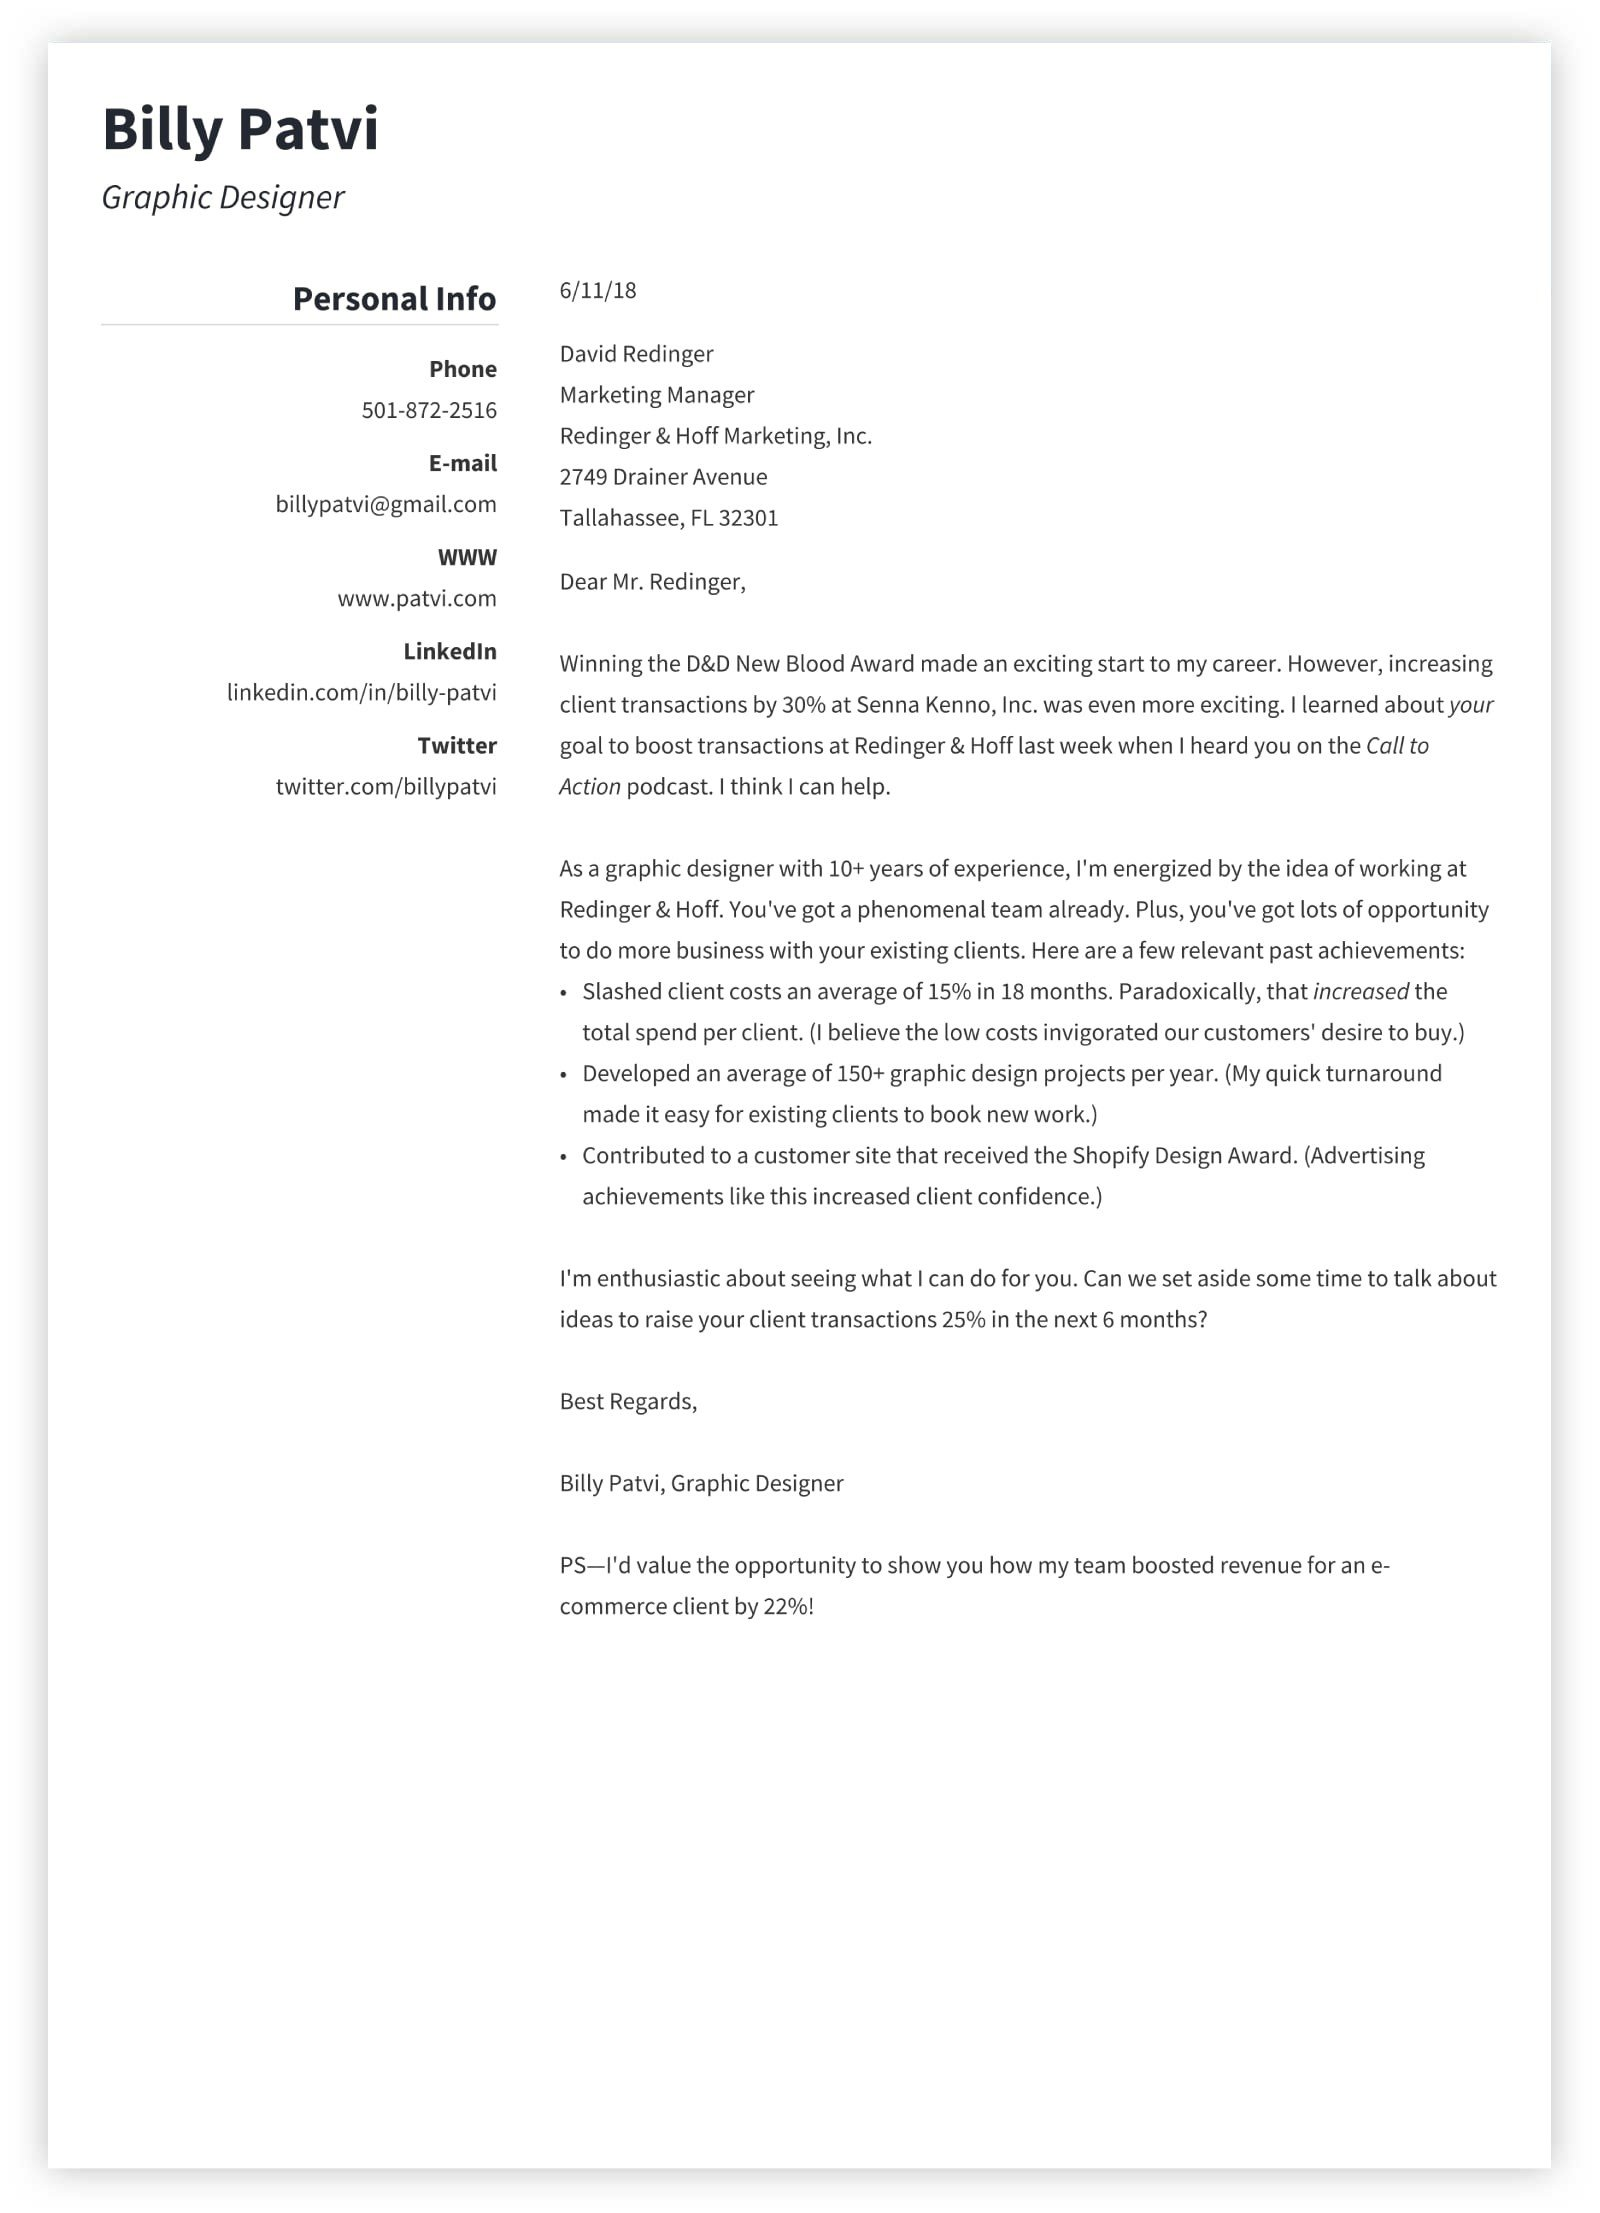 Cover Letter For Job Application Uk, Graphic Design Cover Letter, Cover Letter For Job Application Uk